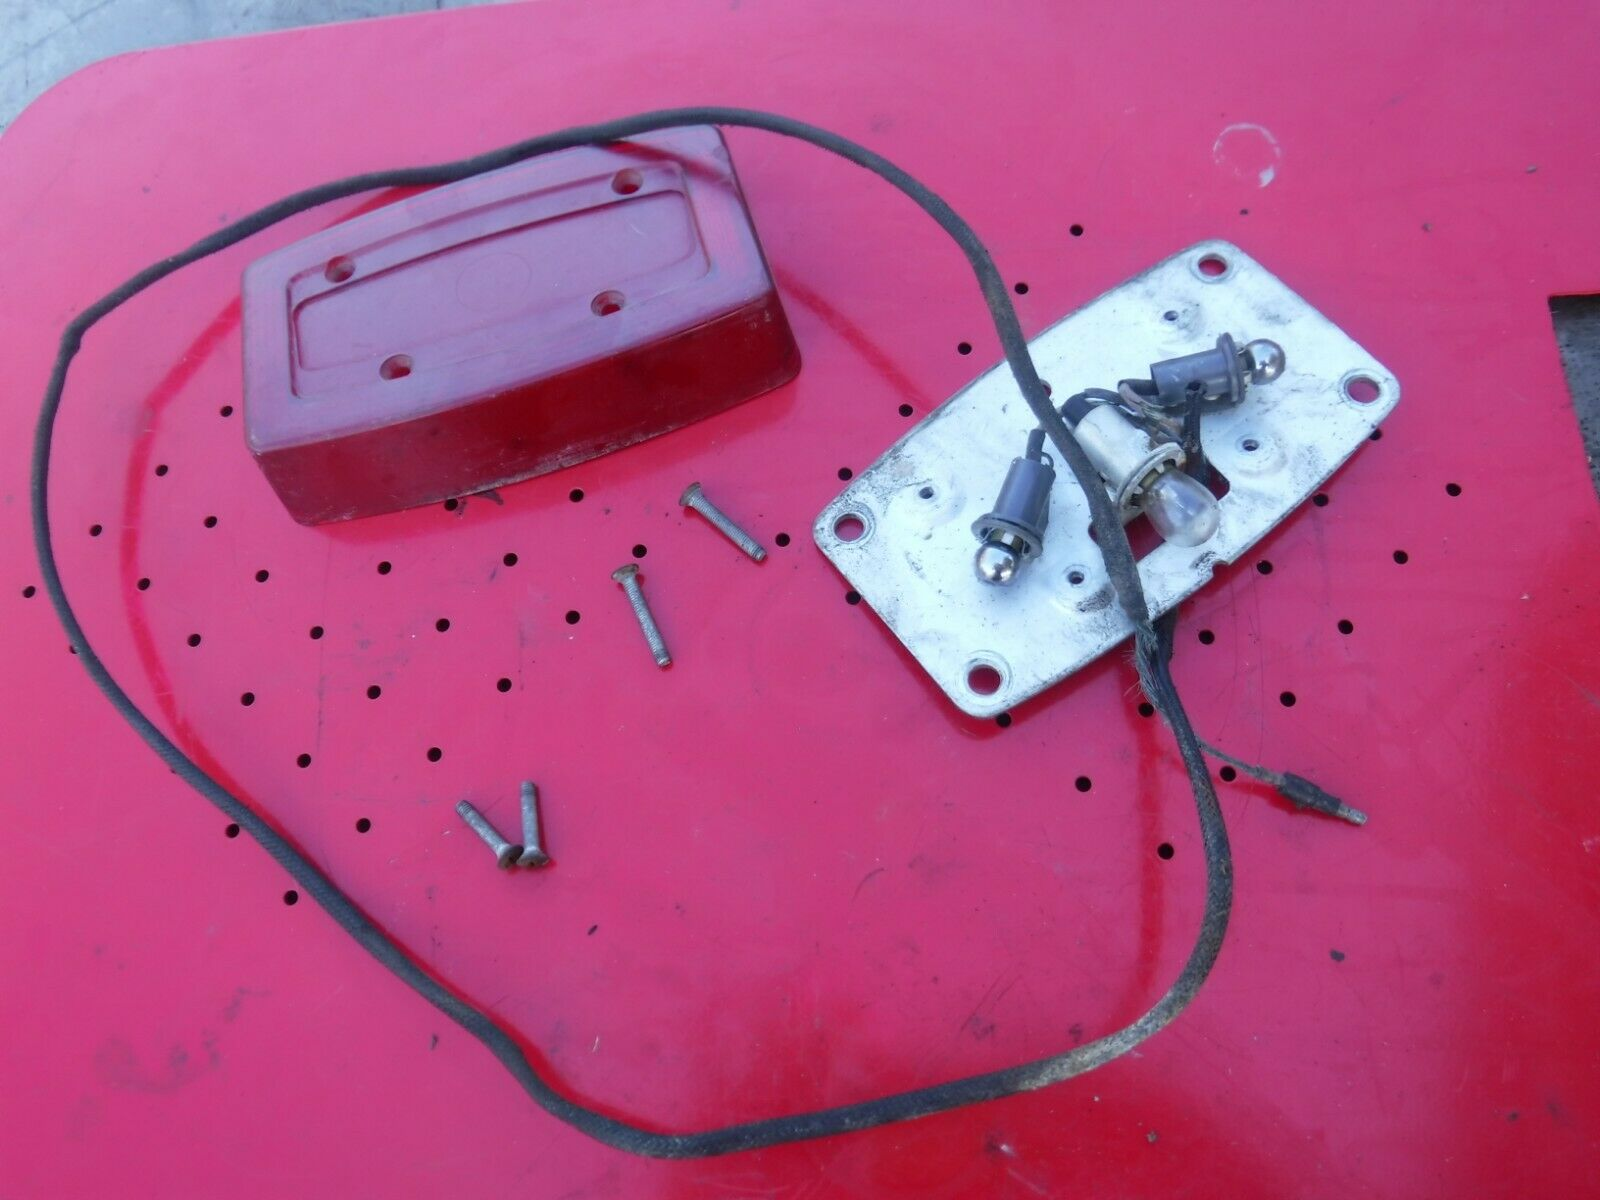 1973 MERCURY 440 MAX snowmobile parts: TAILLIGHT ASSEMBLY